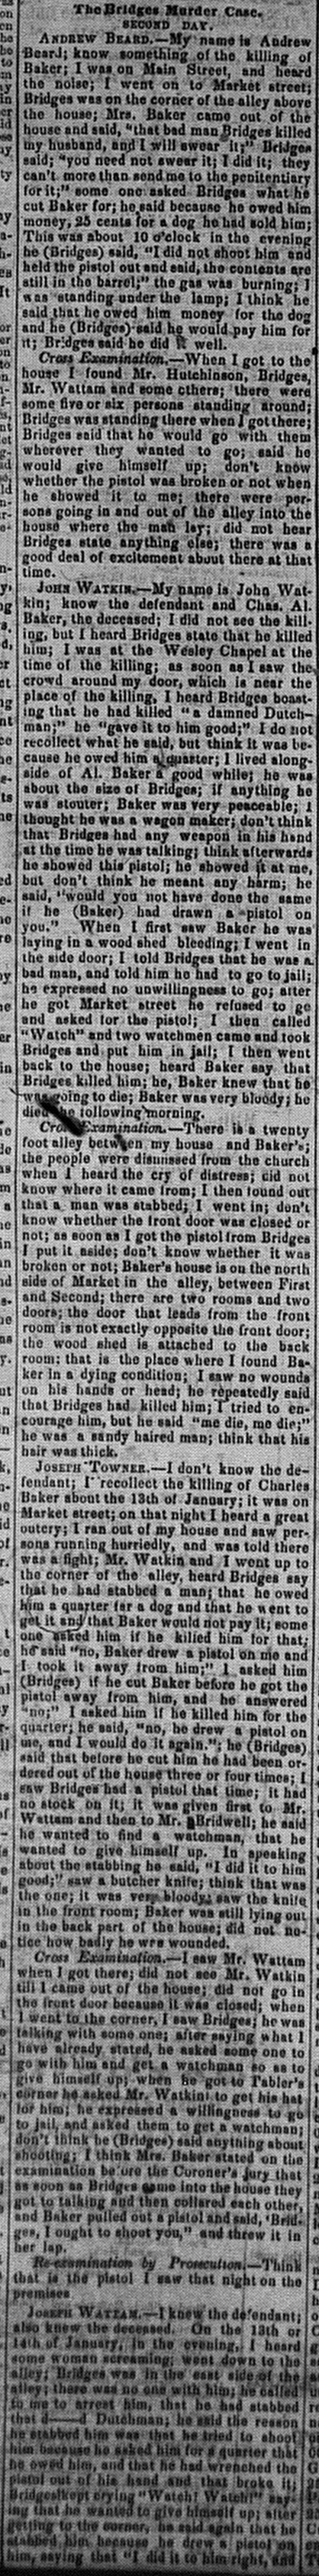 New Albany Daily Tribune, Thursday, 3 November 1859, p.2, column 2, Stuart Barth Wrege Indiana History Room